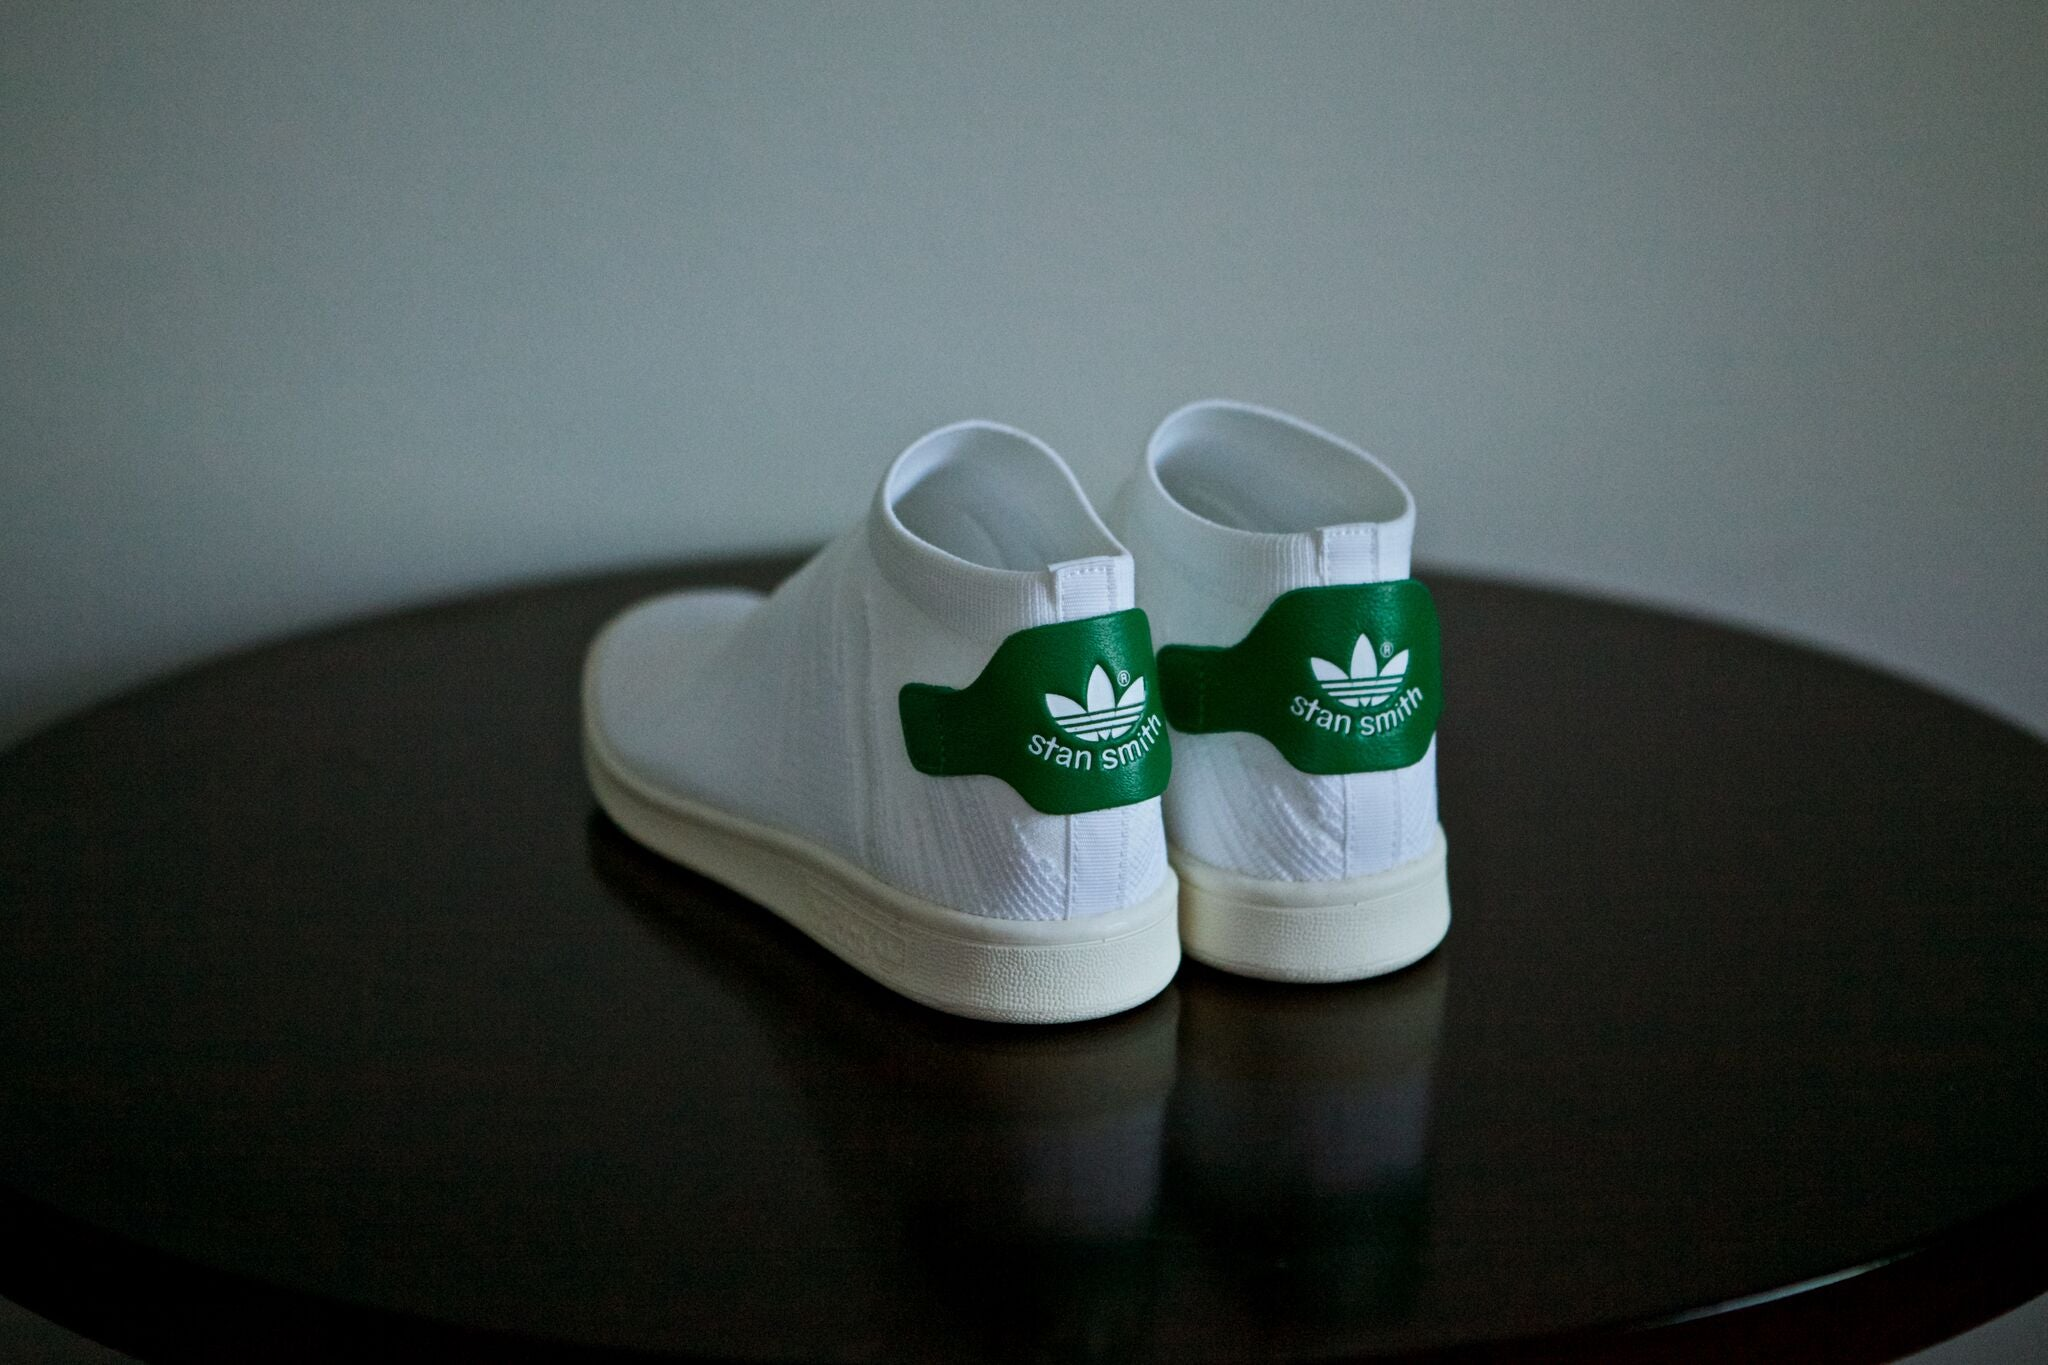 stan smith shock primeknit